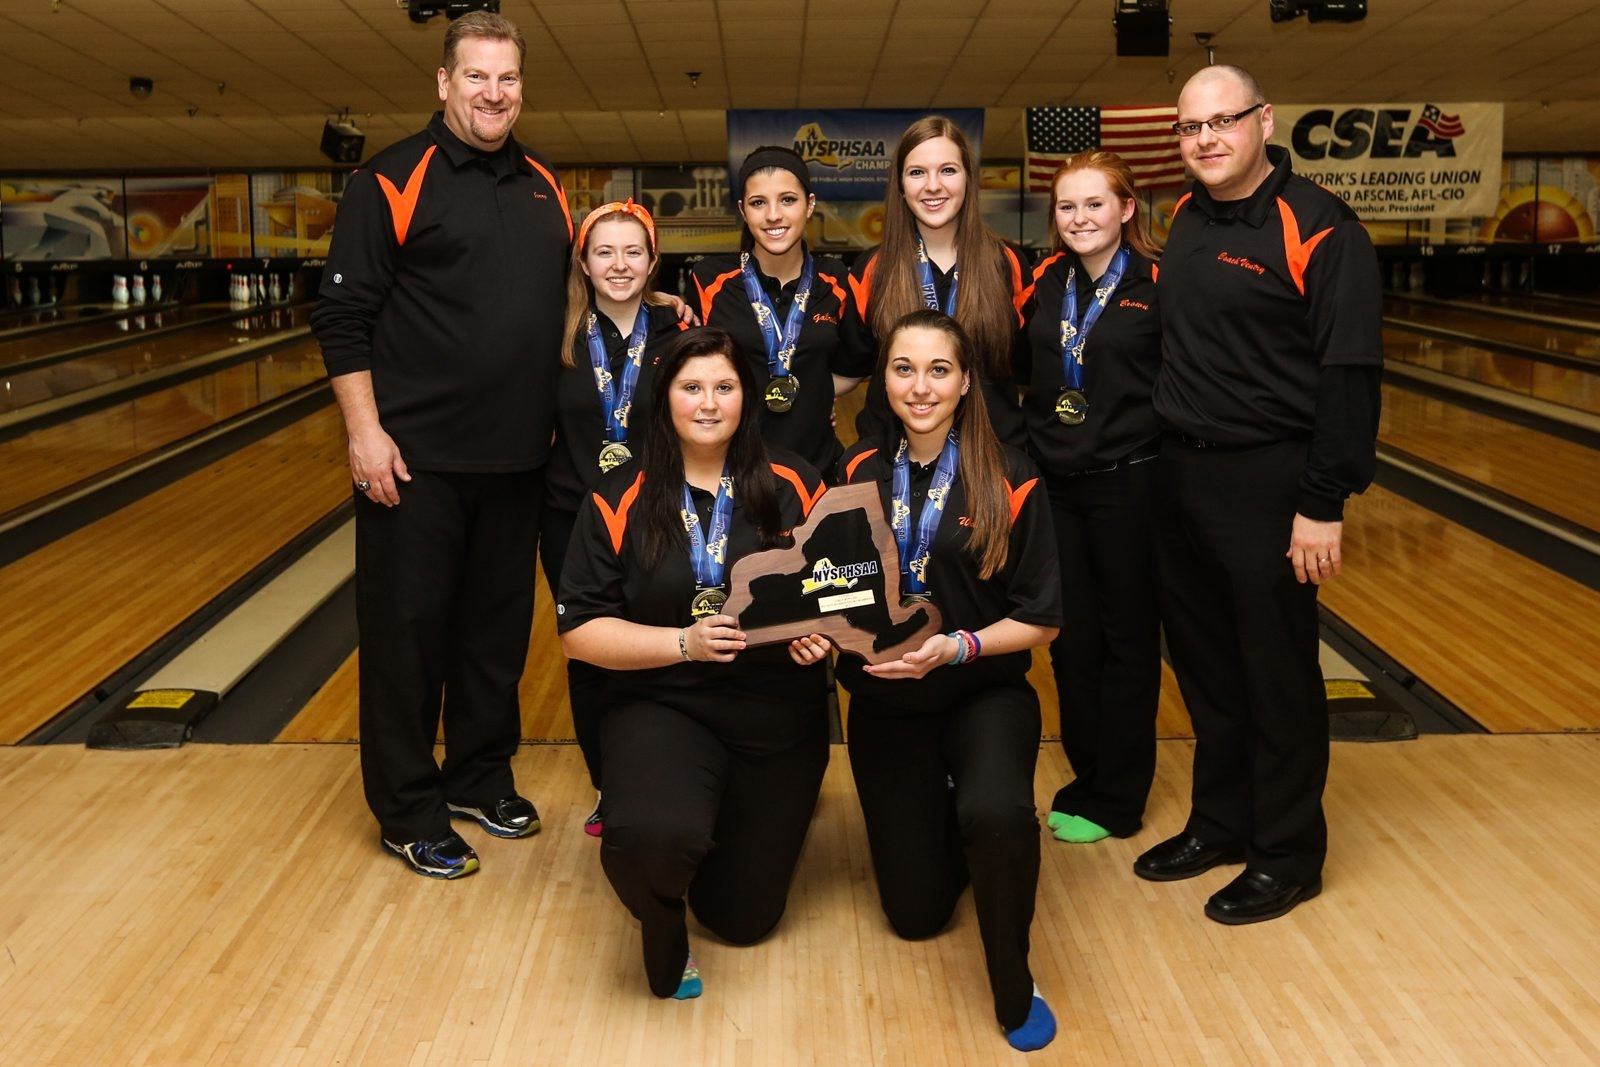 Section VI coach Jerry Carroll, left,  and assistant Ed Ventry flank  back row, from left Sara Snyder (Depew), Angela Gabriele (Niagara Falls), Haley Carroll ( Williamsville South) and Julia Brown (Niagara-Wheatfield). Front row, from left, Lauren Pieroni (Lockport) and  Alexis Wade (Lewiston-Porter).